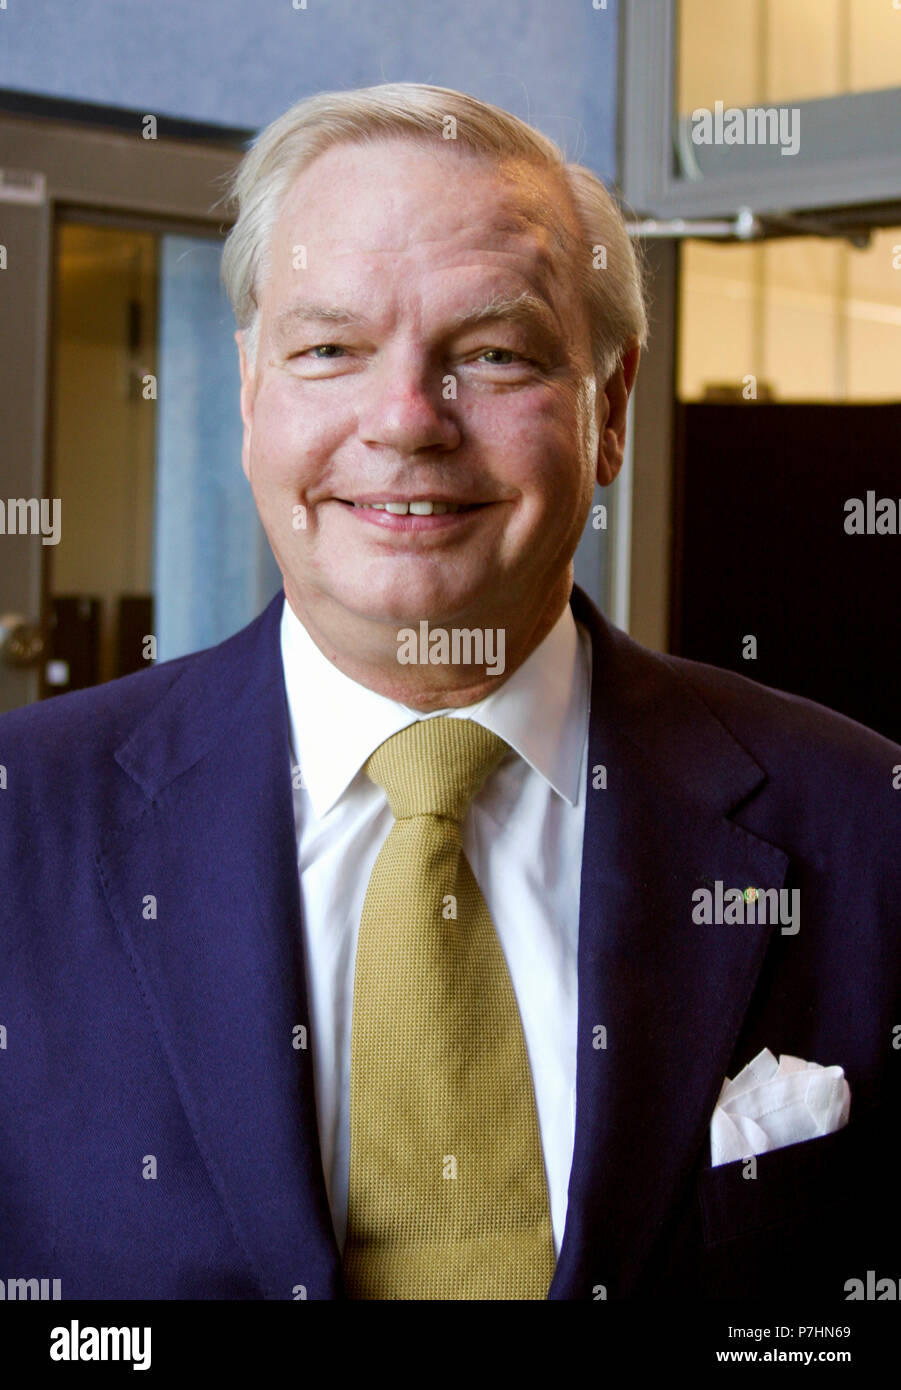 CARL-JAN GRANQUIST Swedish Restaurateur 2006 - Stock Image